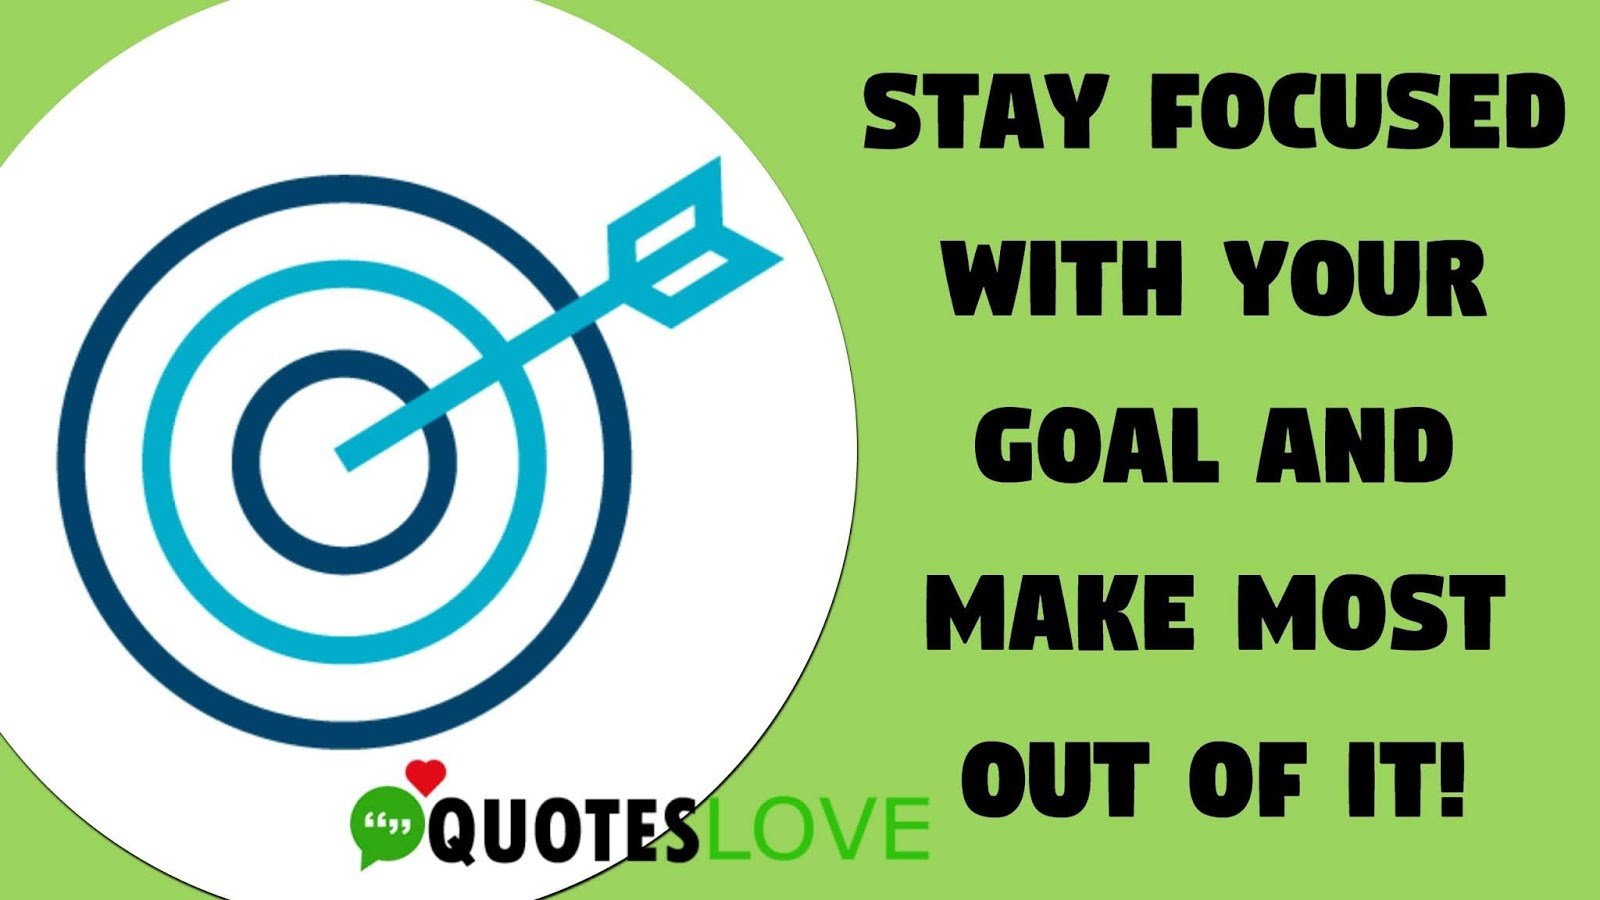 Stay focused with your goal and make most out of it!